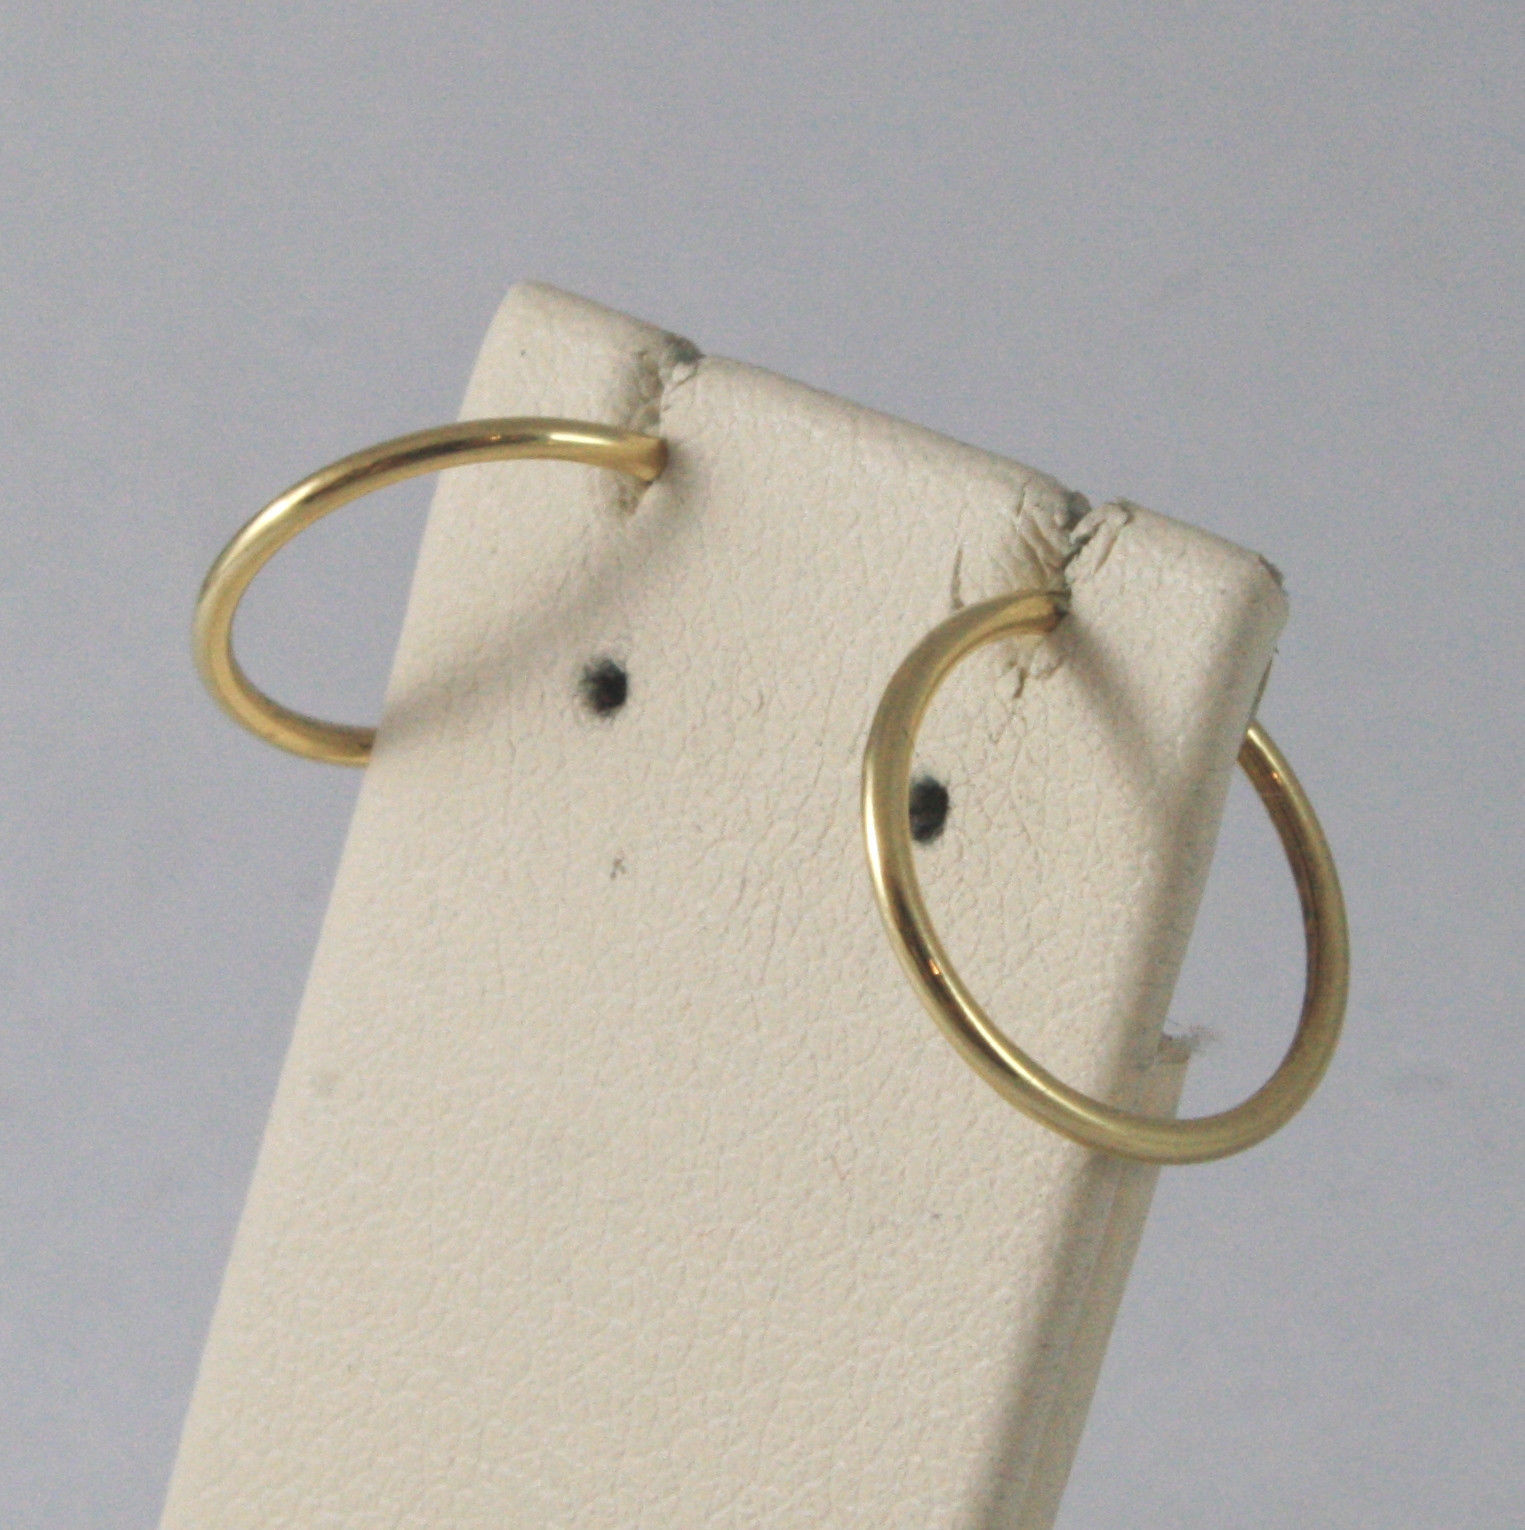 SOLID 18KT. YELLOW GOLD CIRCLE TUBE EARRINGS DIAMETER 0,51 IN MADE IN ITALY 18K